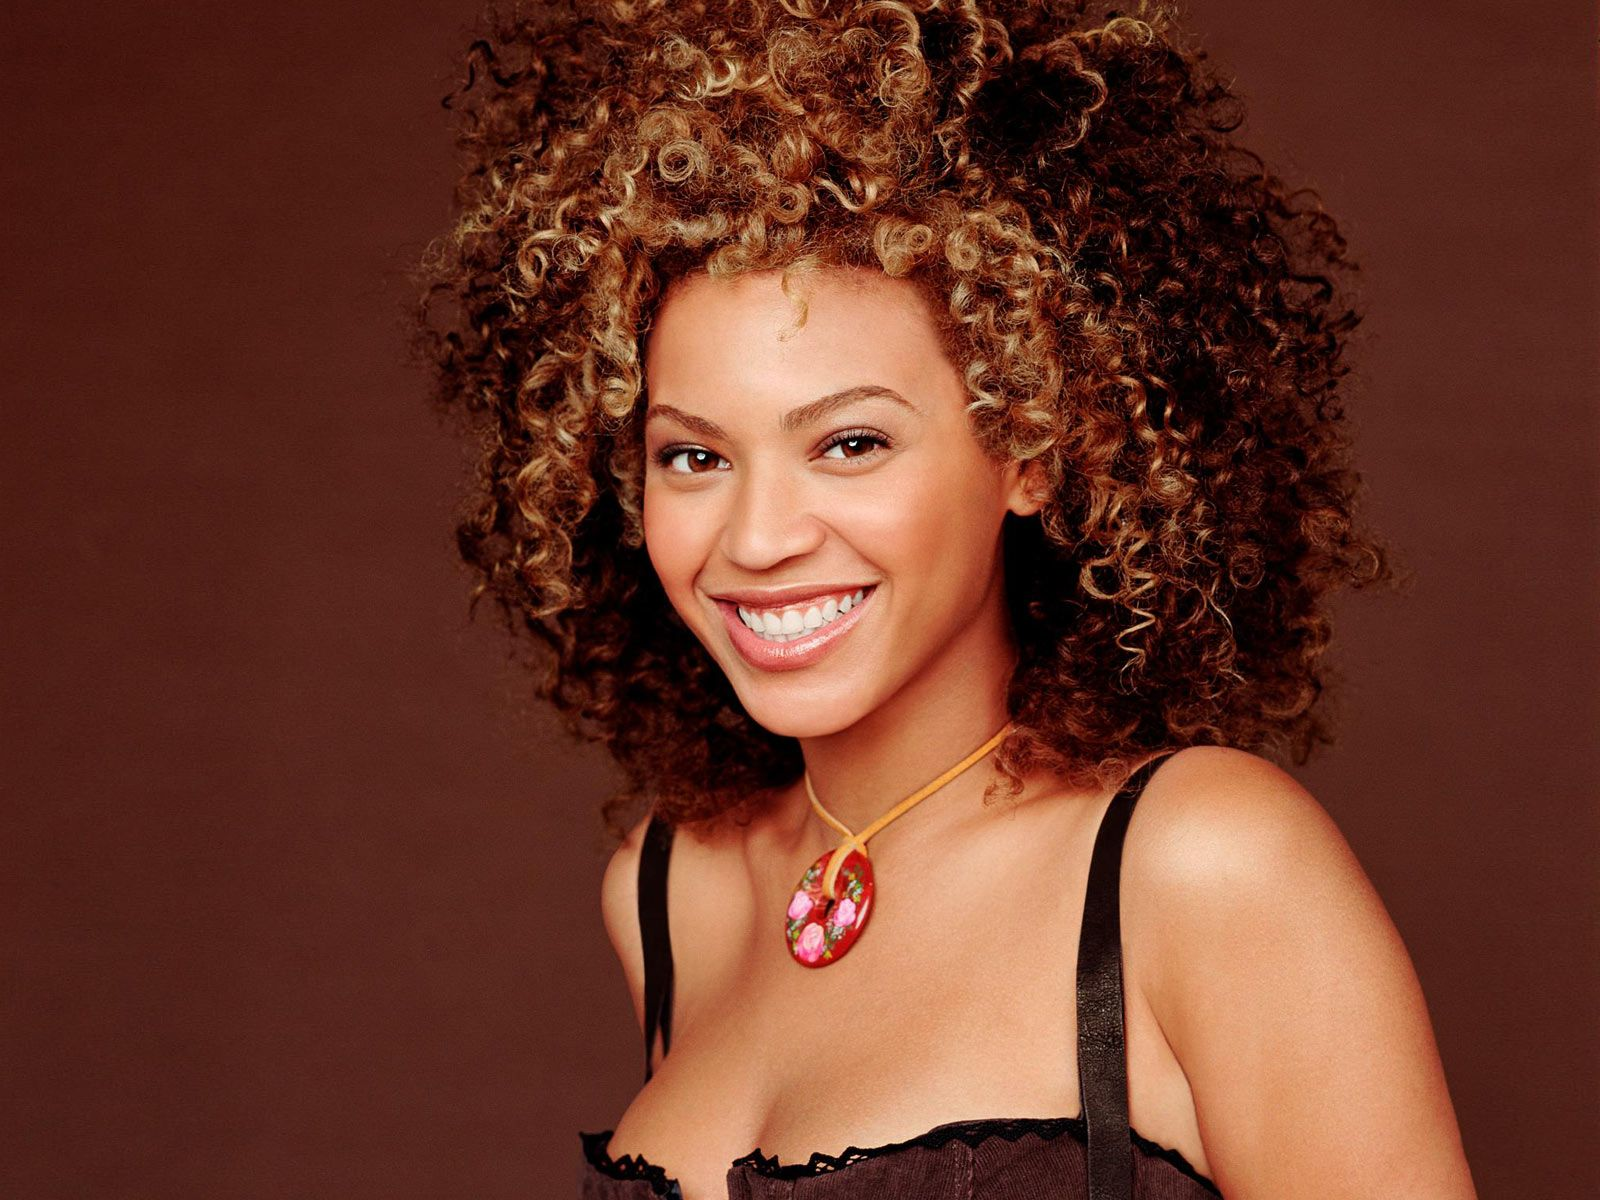 Labels: Beyonce Knowles Photo Gallery , Hot Beyonce Knowles Pictures ... Beyonce Knowles